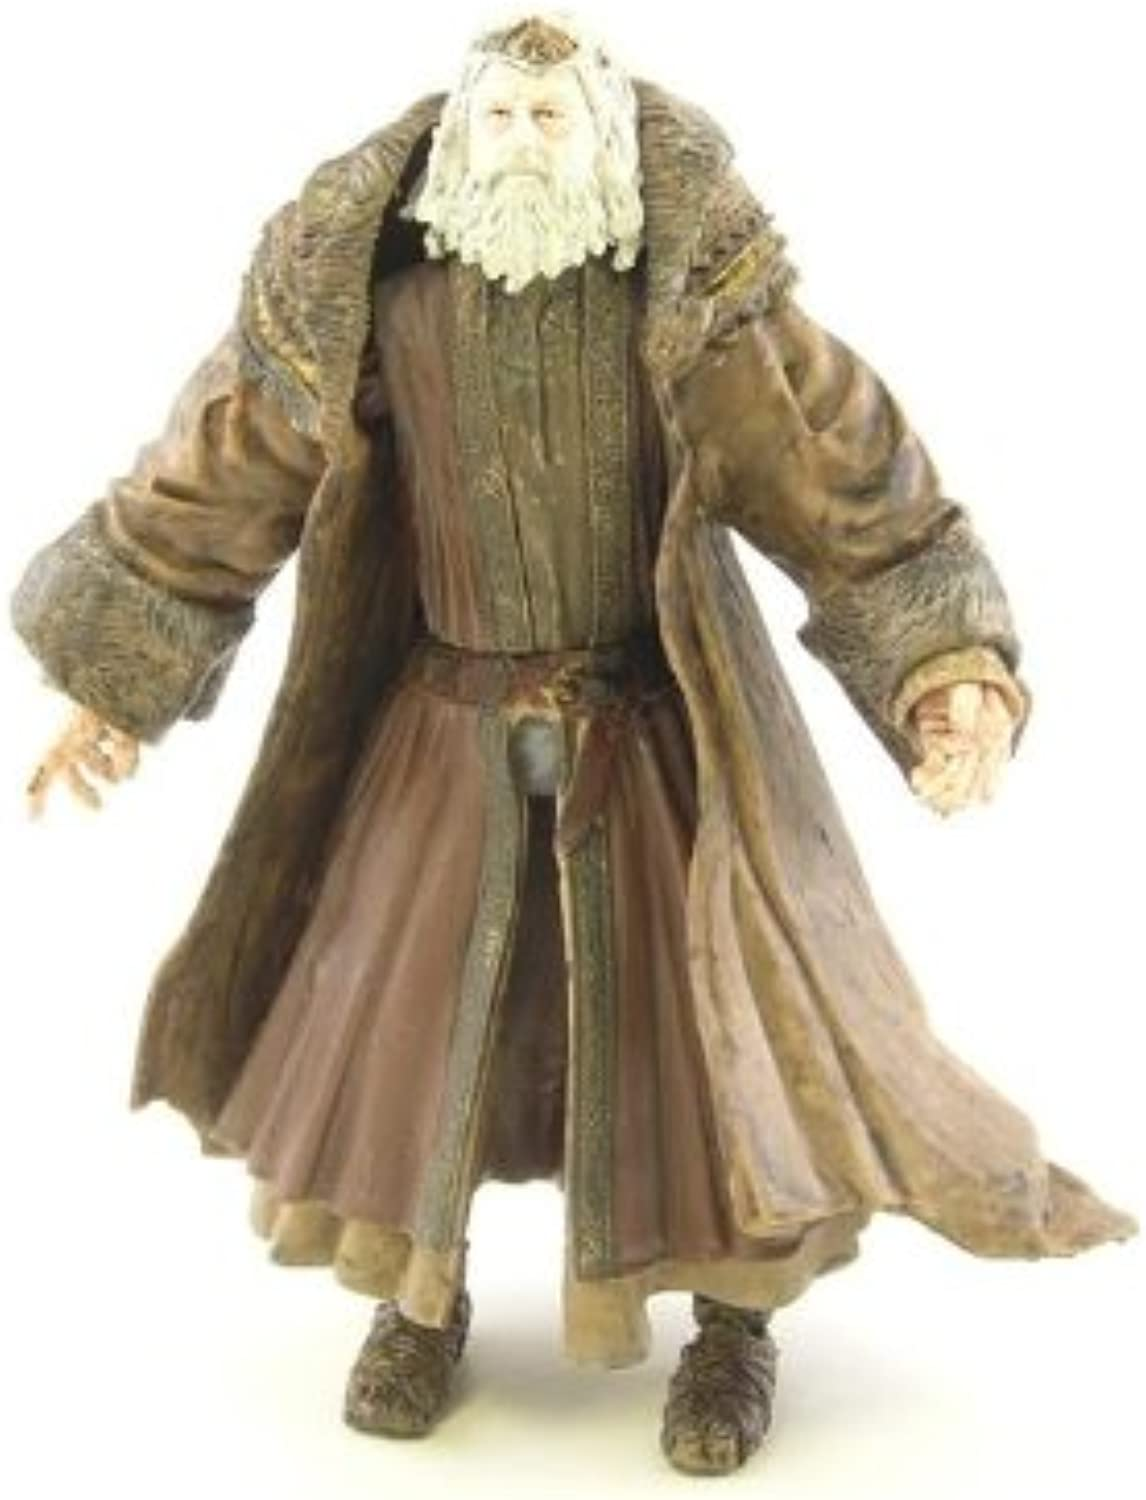 Lord of the Rings Trilogy Edition Possessed King Theoden Action Figure